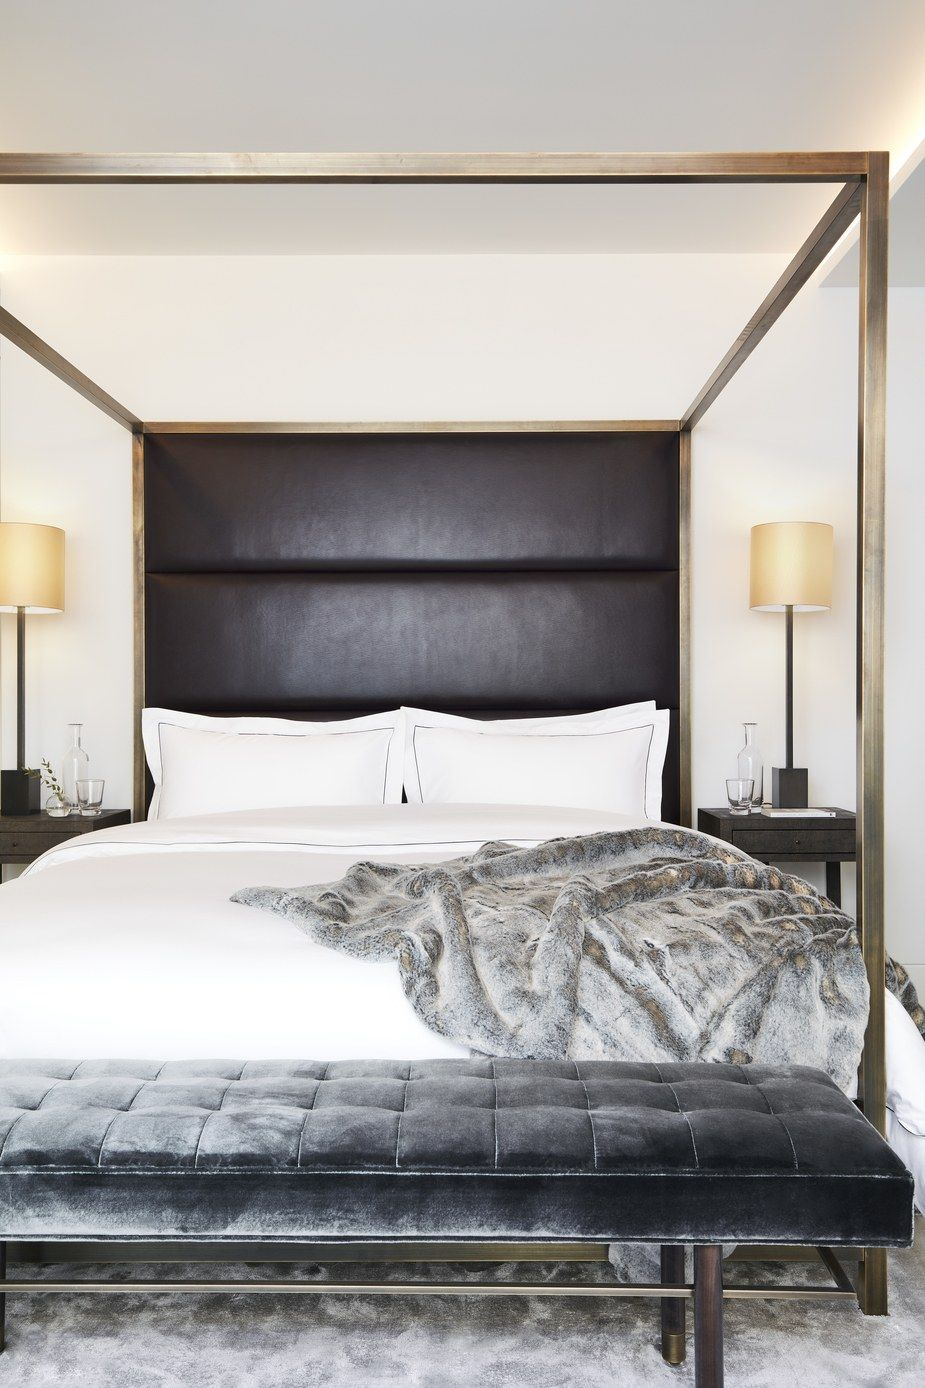 Interior Design Firm On Bedroom Designs: You Can Now Live Inside The Iconic Hempel Hotel